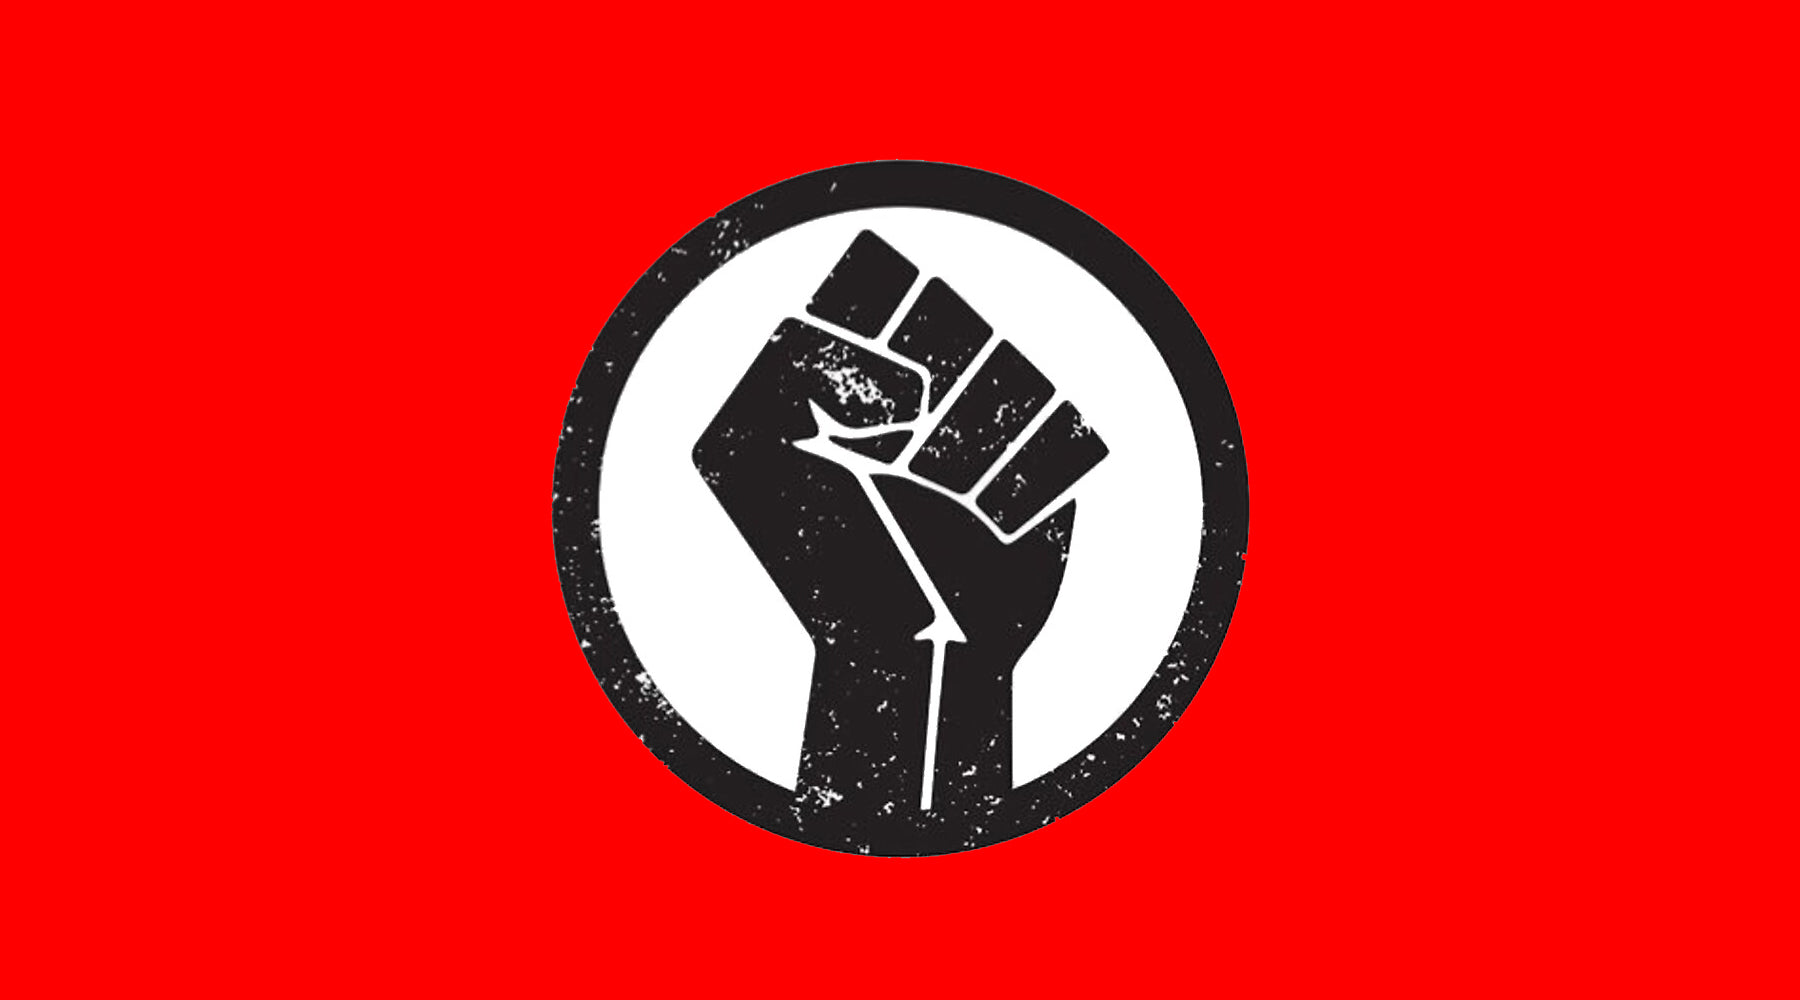 Black Lives Matter fist on red background | Nikki Darling Australia